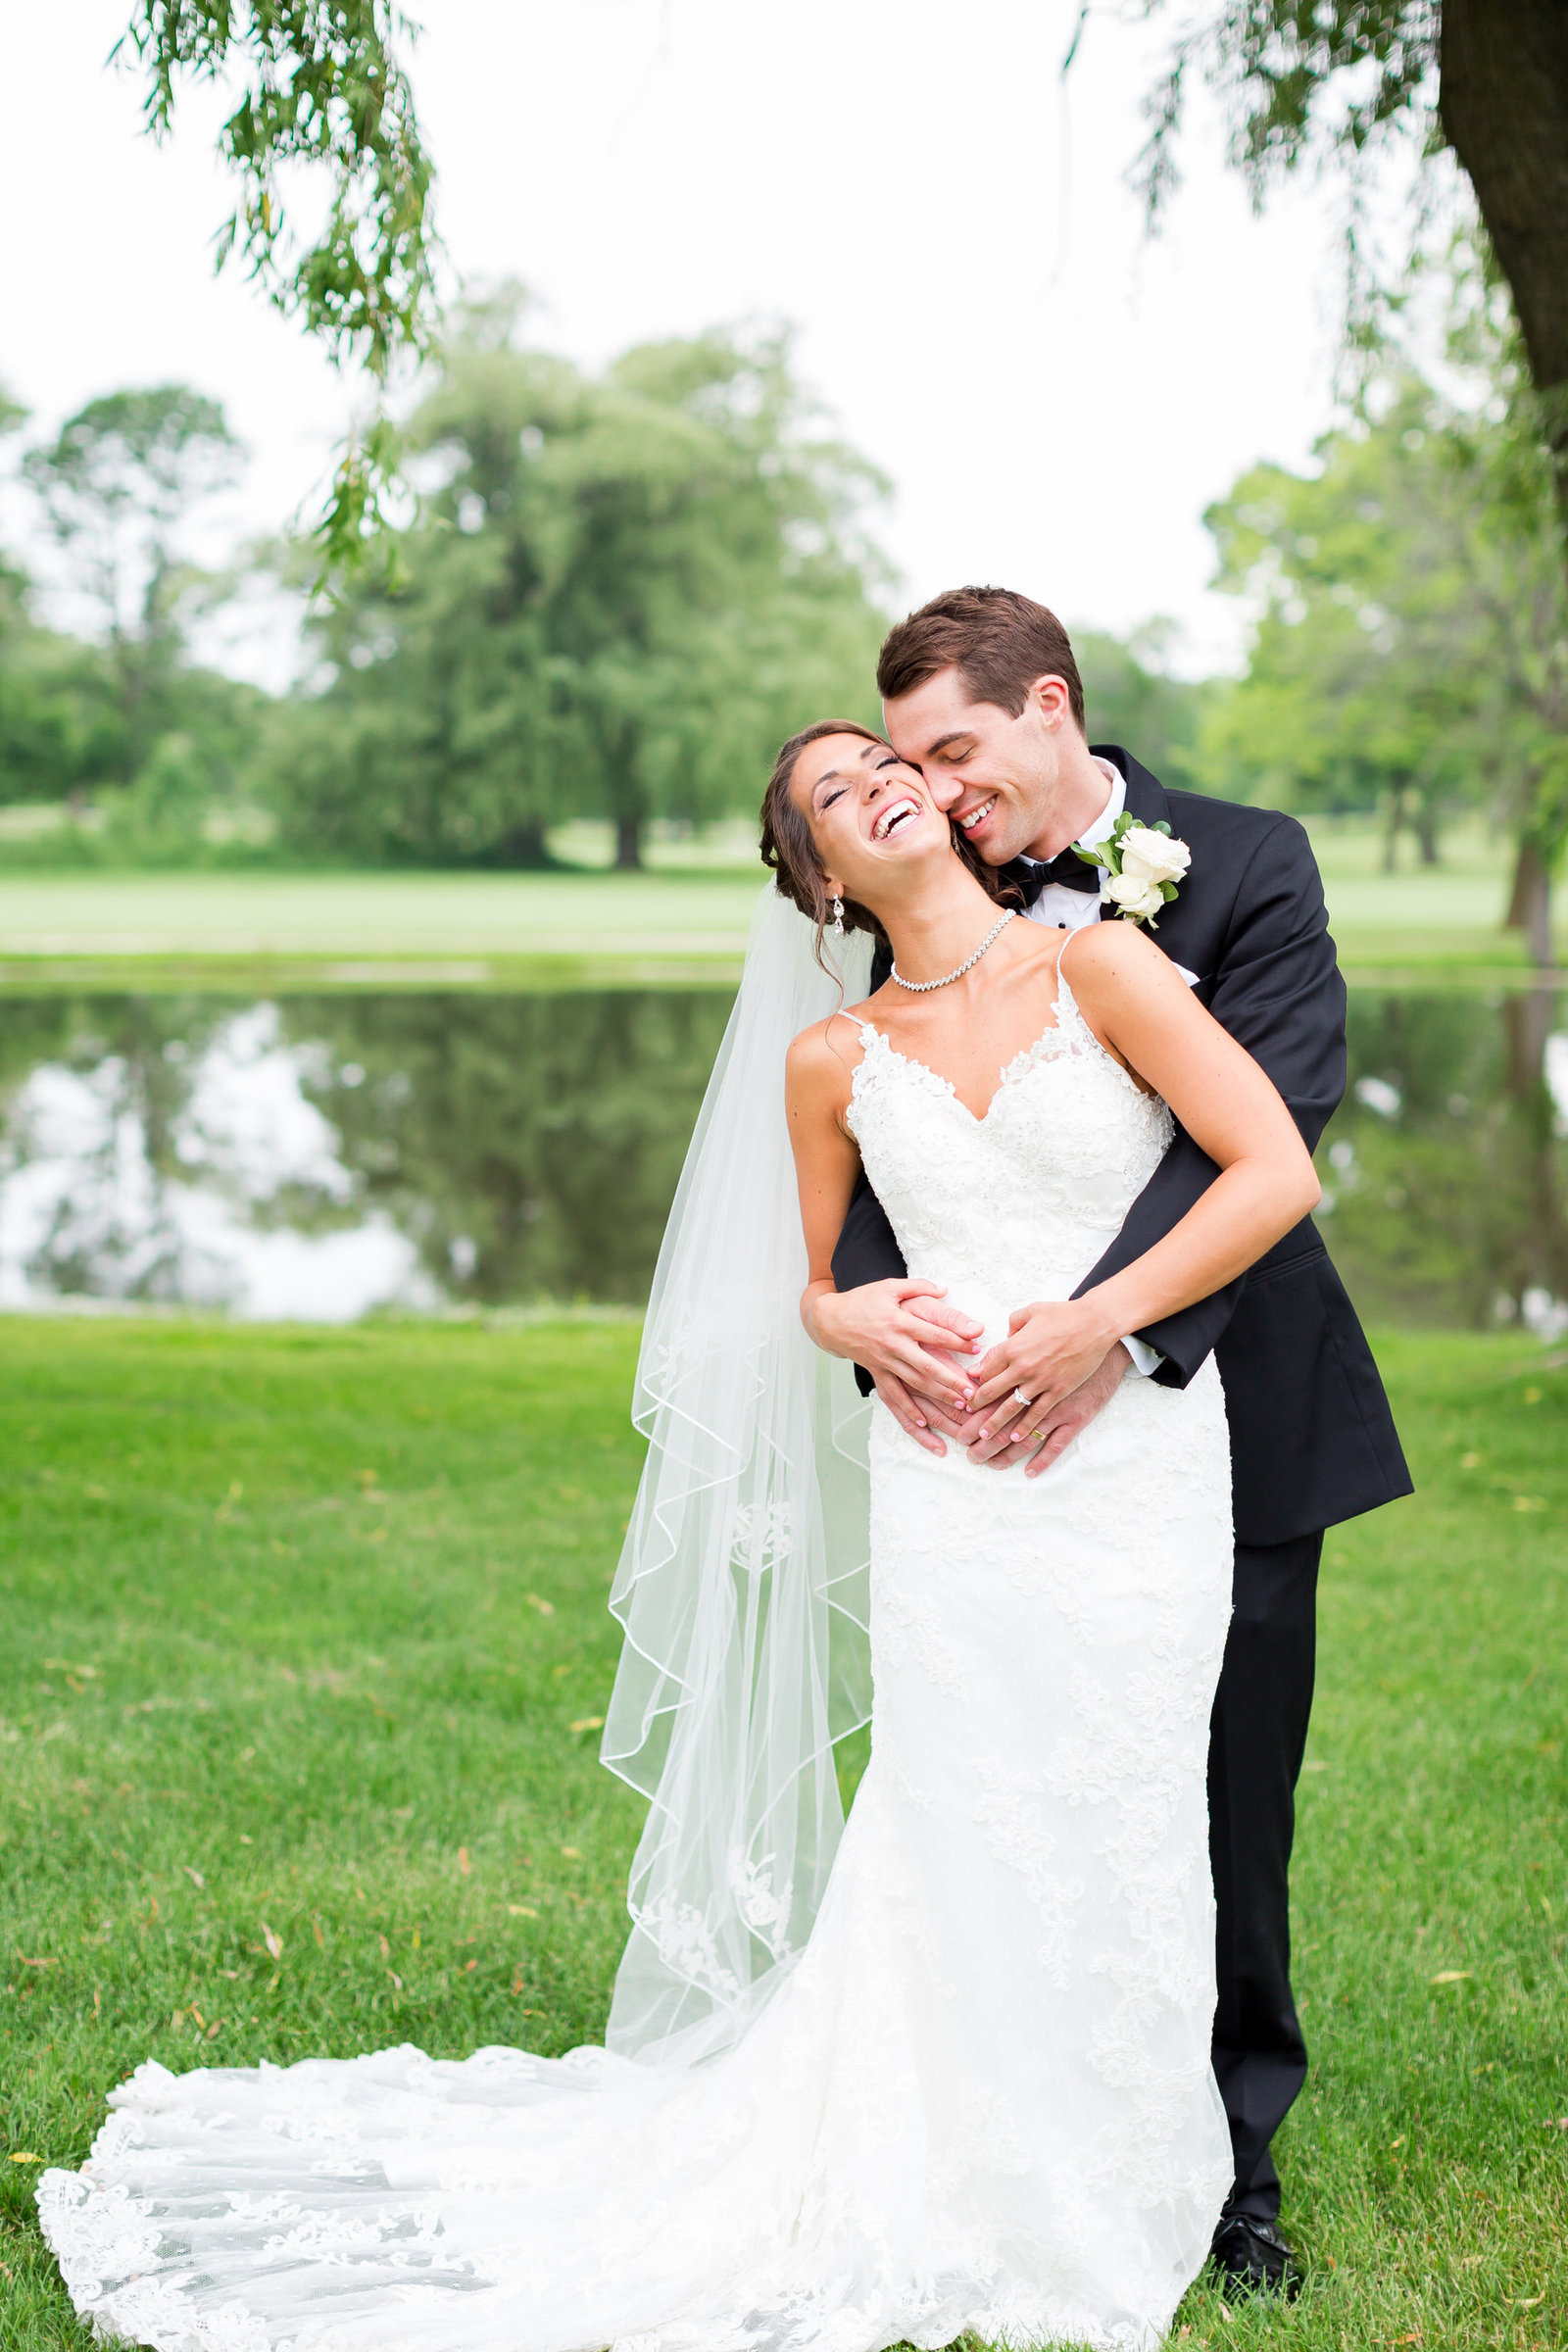 Maison Meredith Photography Wisconsin Wedding Photographer 055